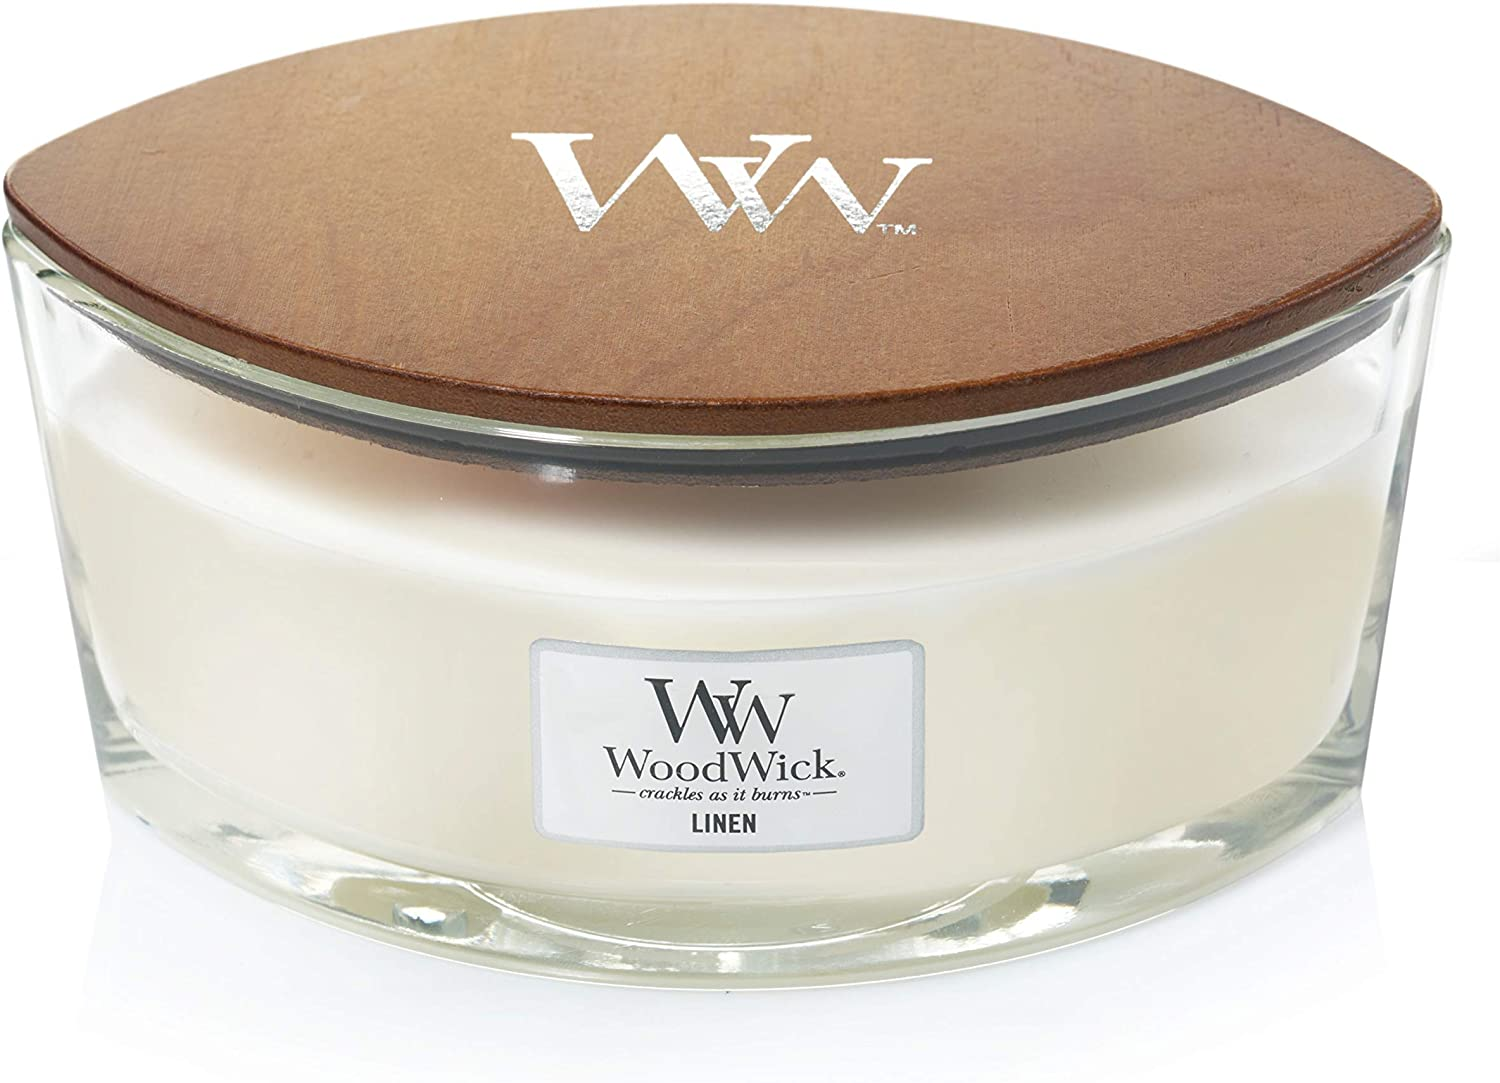 WoodWick Linen Everyday Hearthwick Candle, Ellipse, White